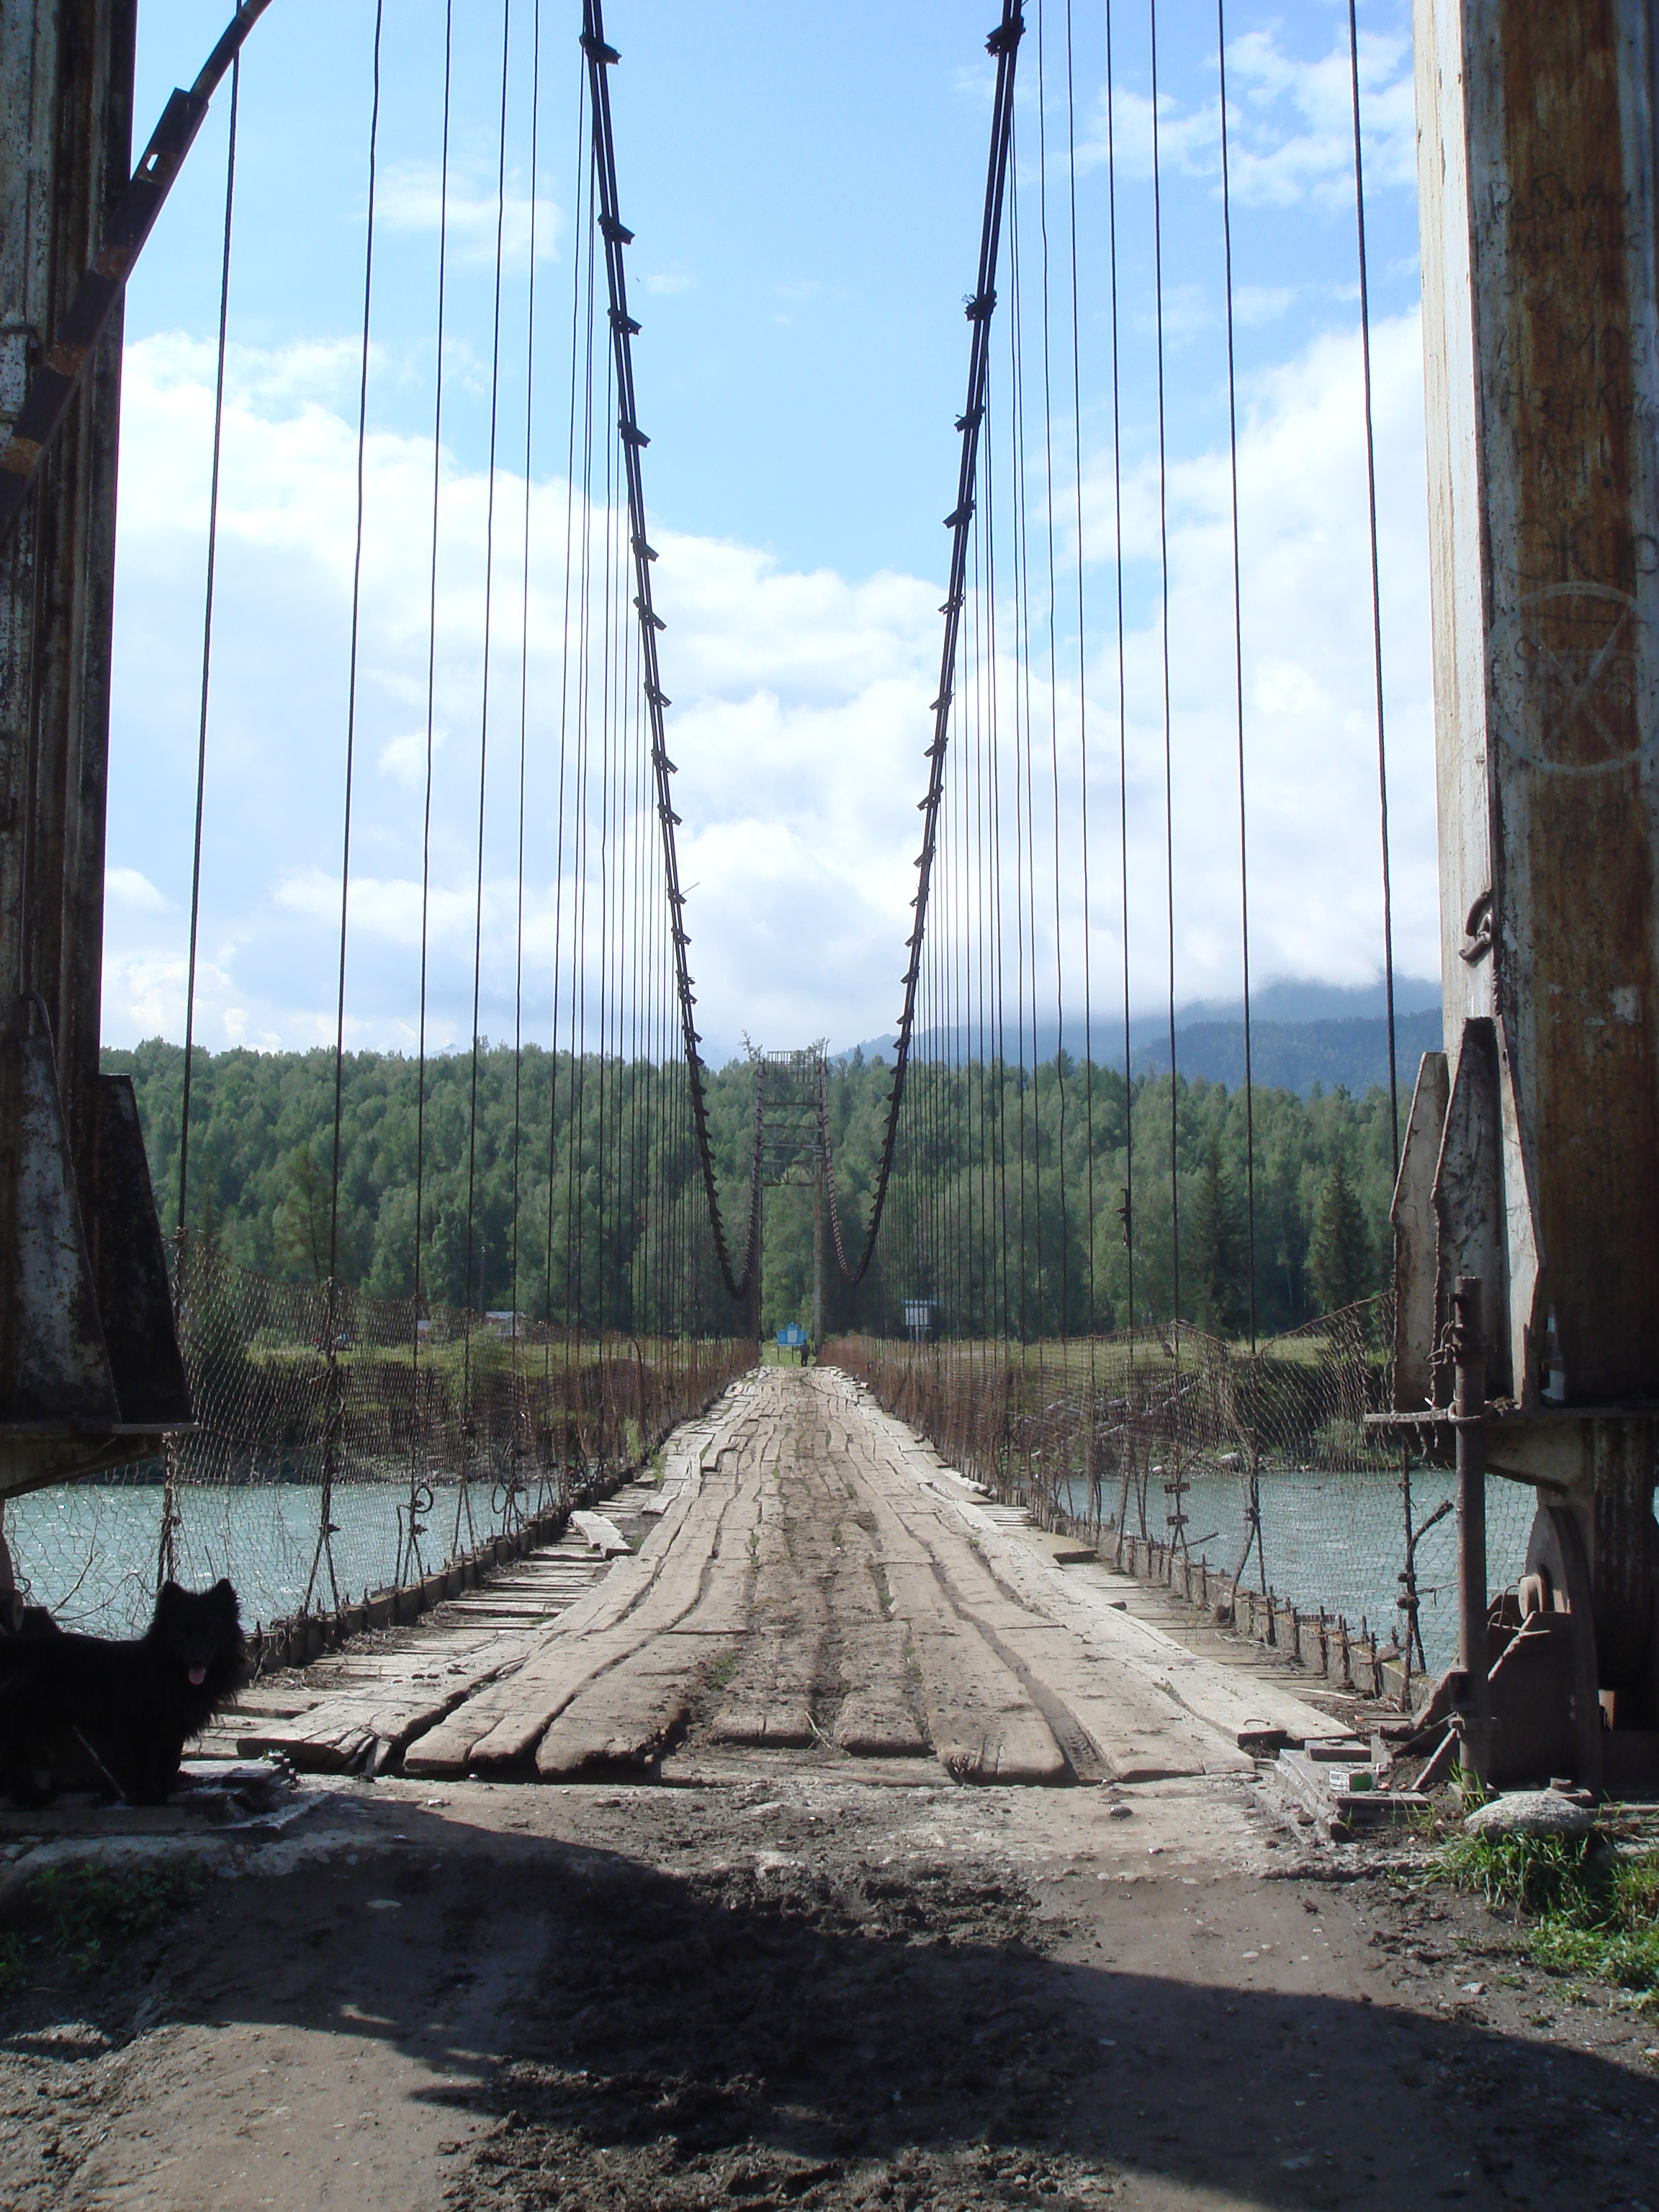 In Altai, Sibmost will build a bridge and reconstruct the Chui road 92